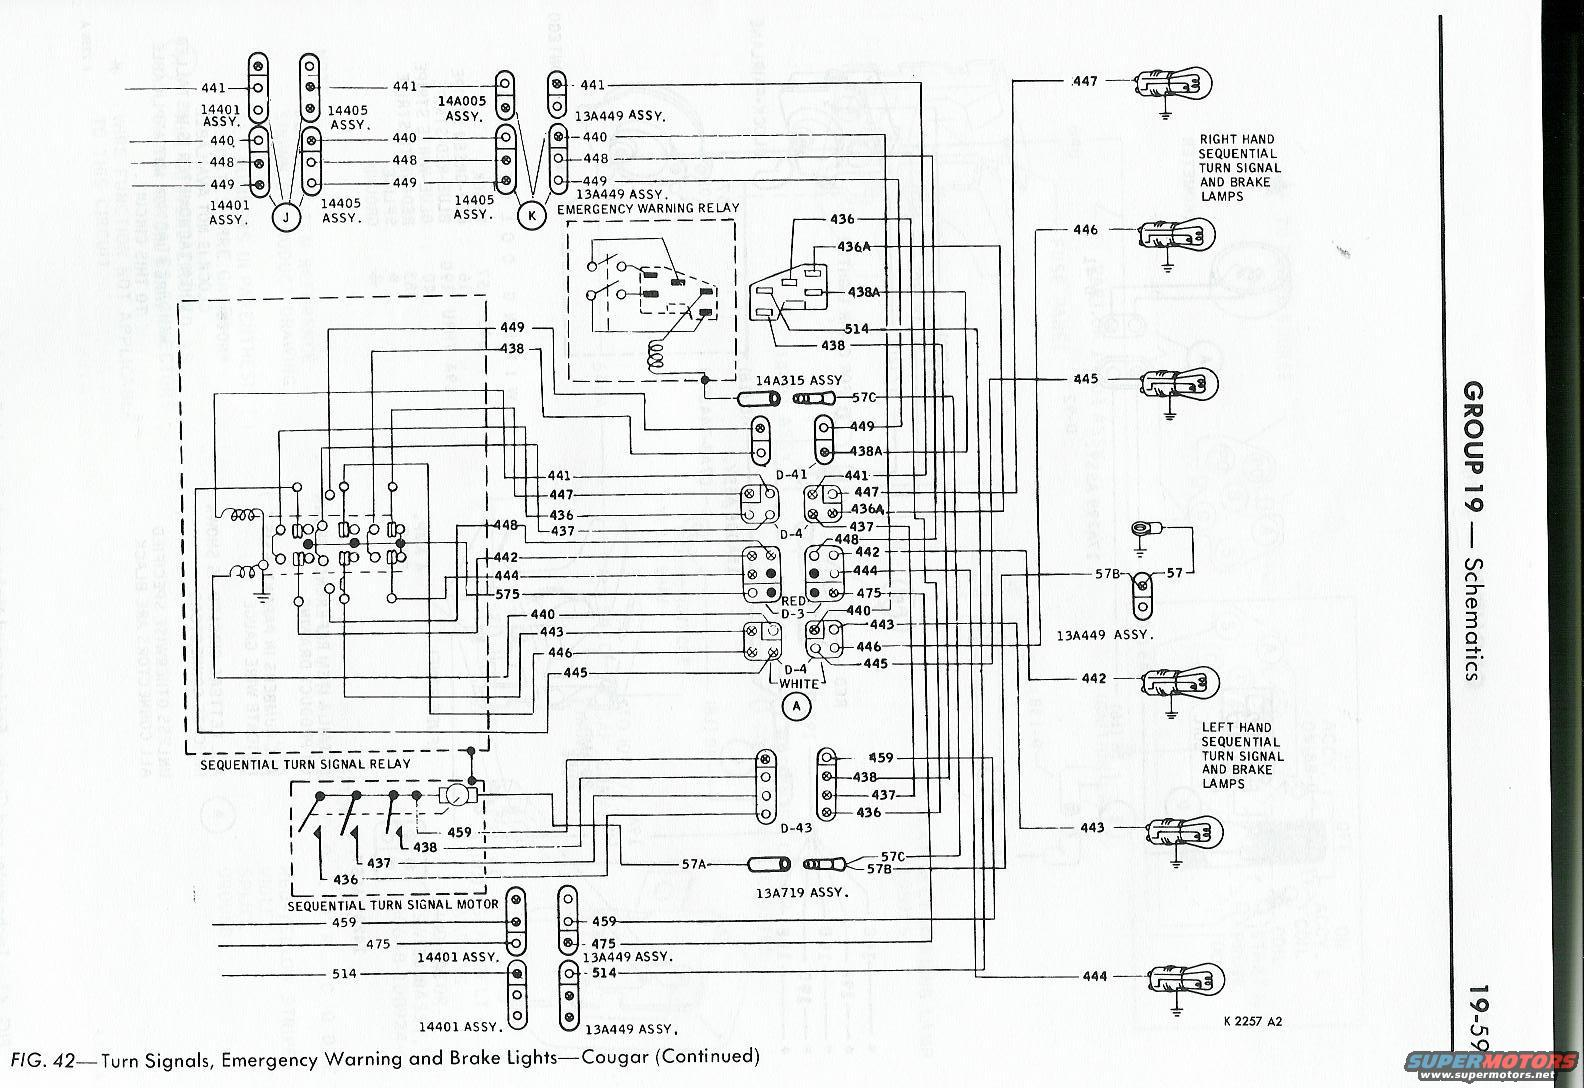 68 Cougar Wiring Schematic - Triumph 650 Simple Wiring Diagram for Wiring  Diagram SchematicsWiring Diagram Schematics